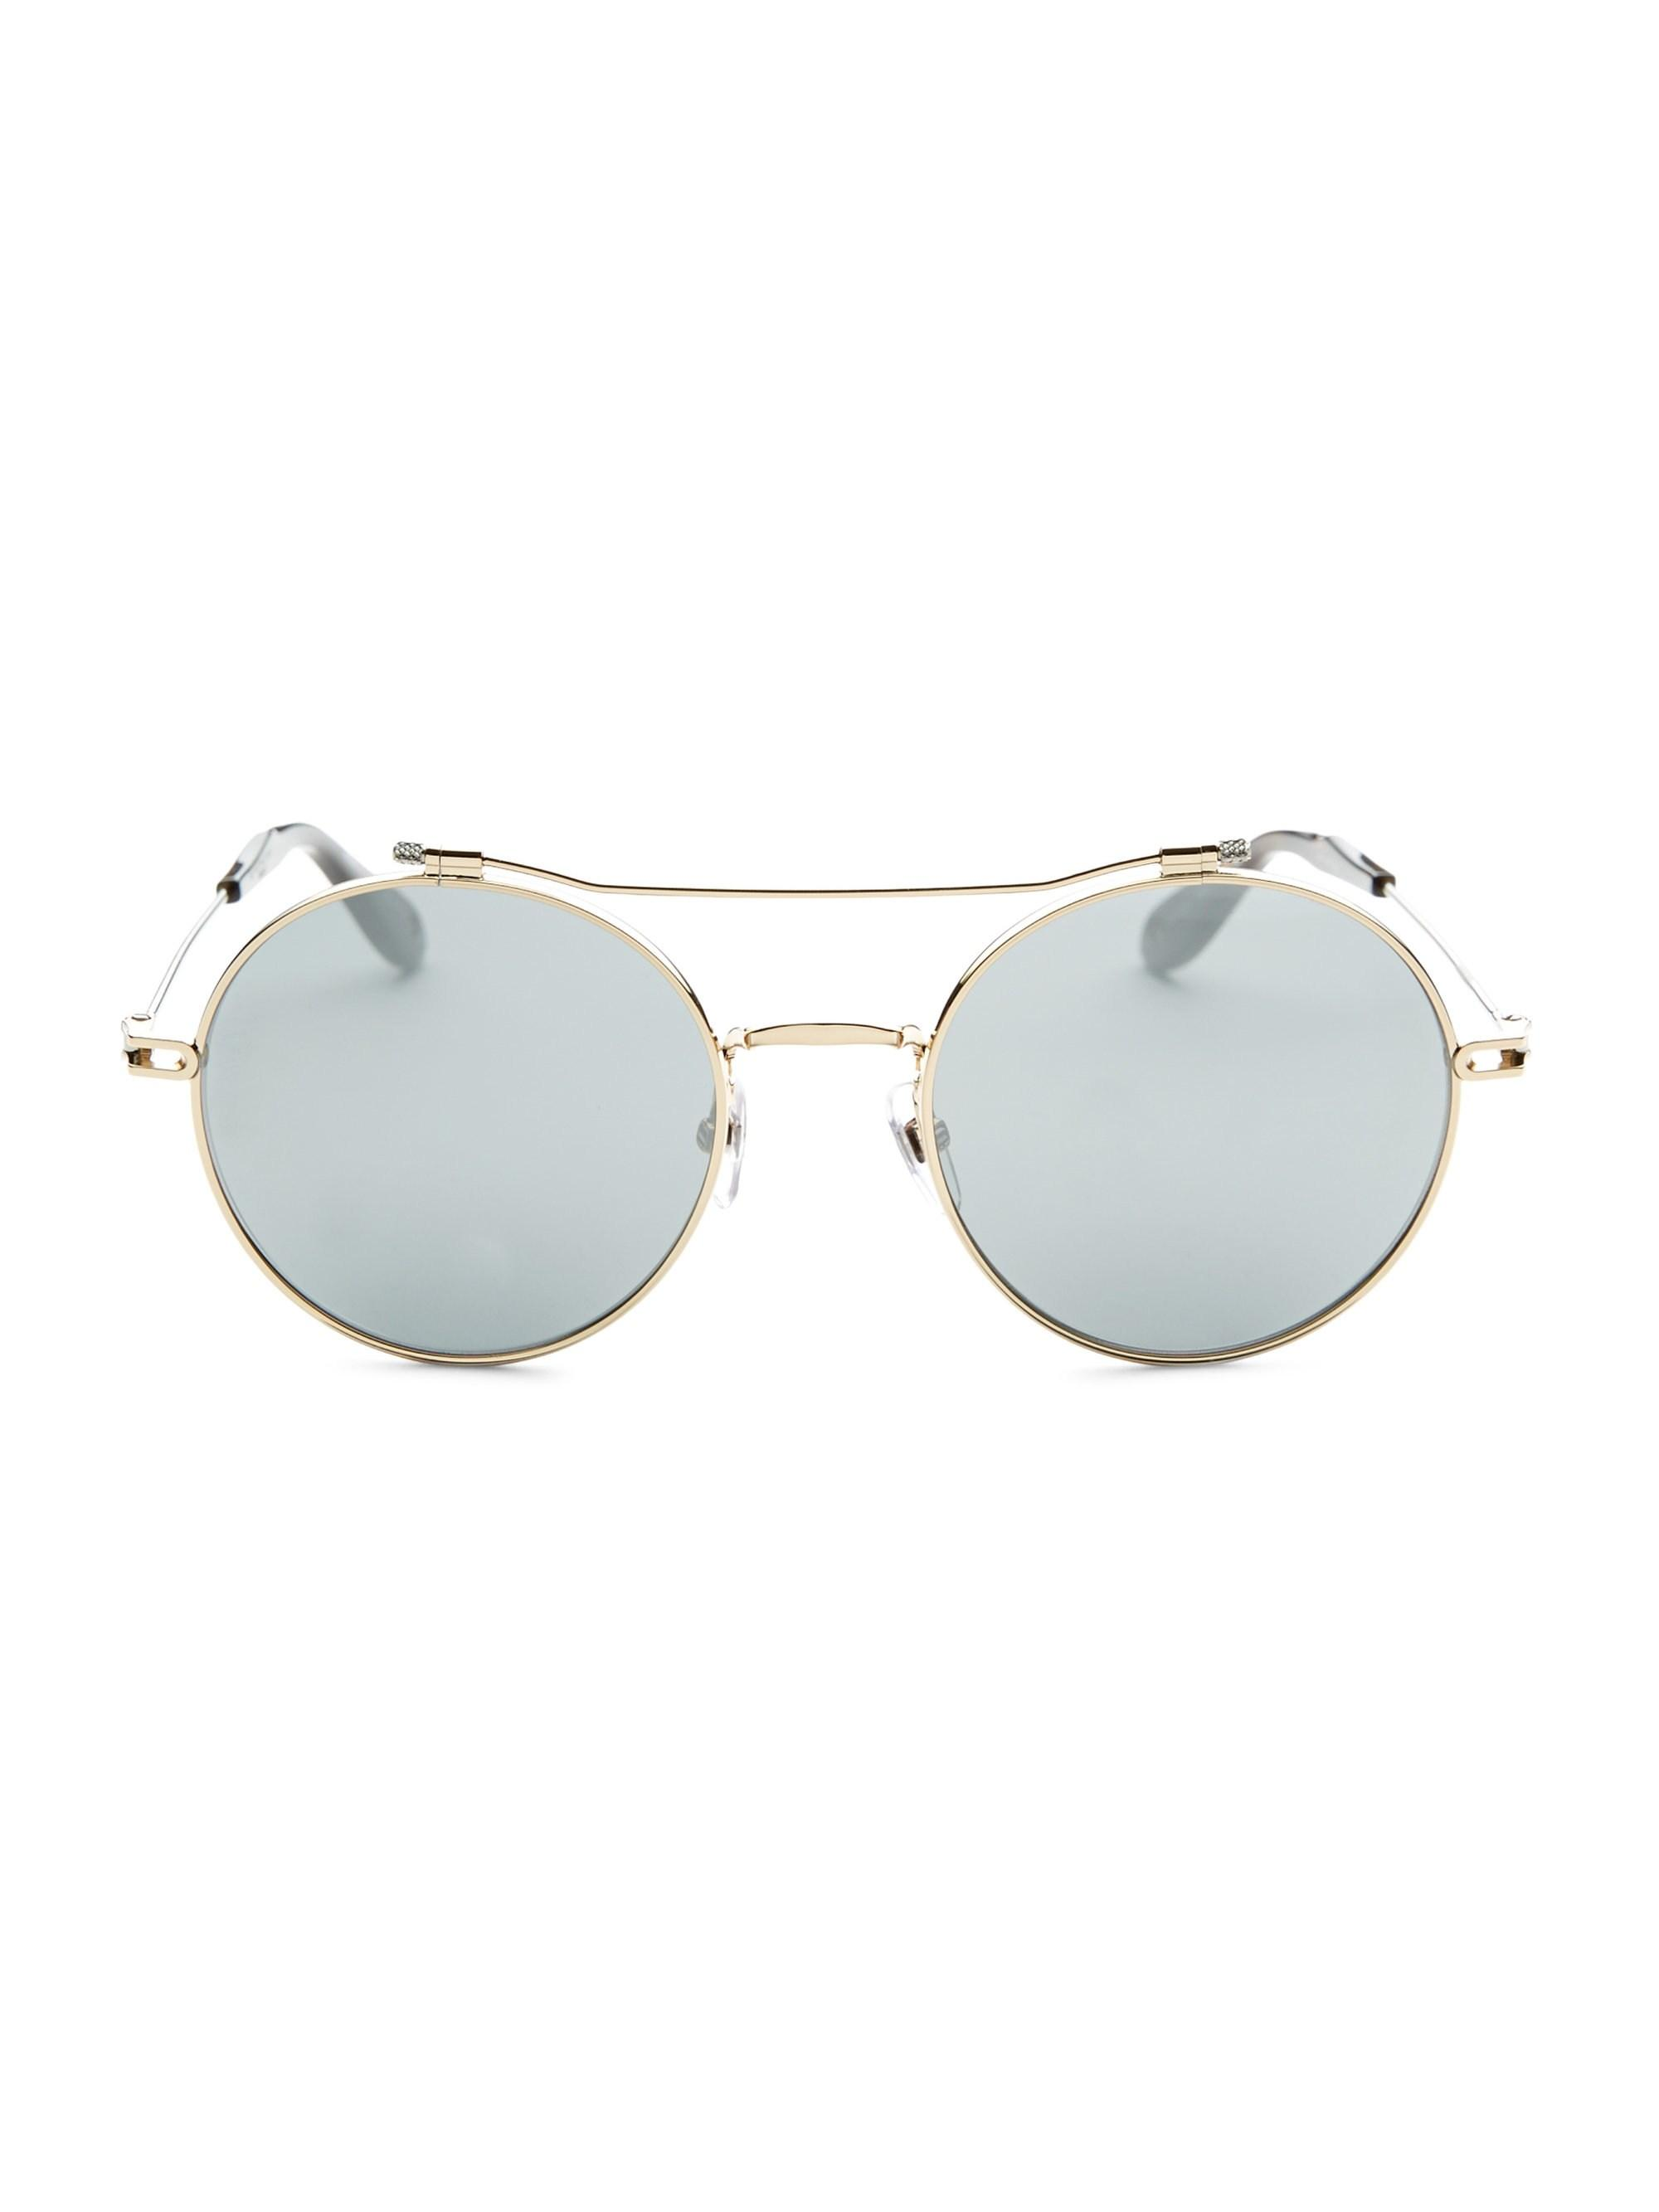 9baa385a6415 Givenchy 53mm Round Sunglasses in Metallic - Lyst